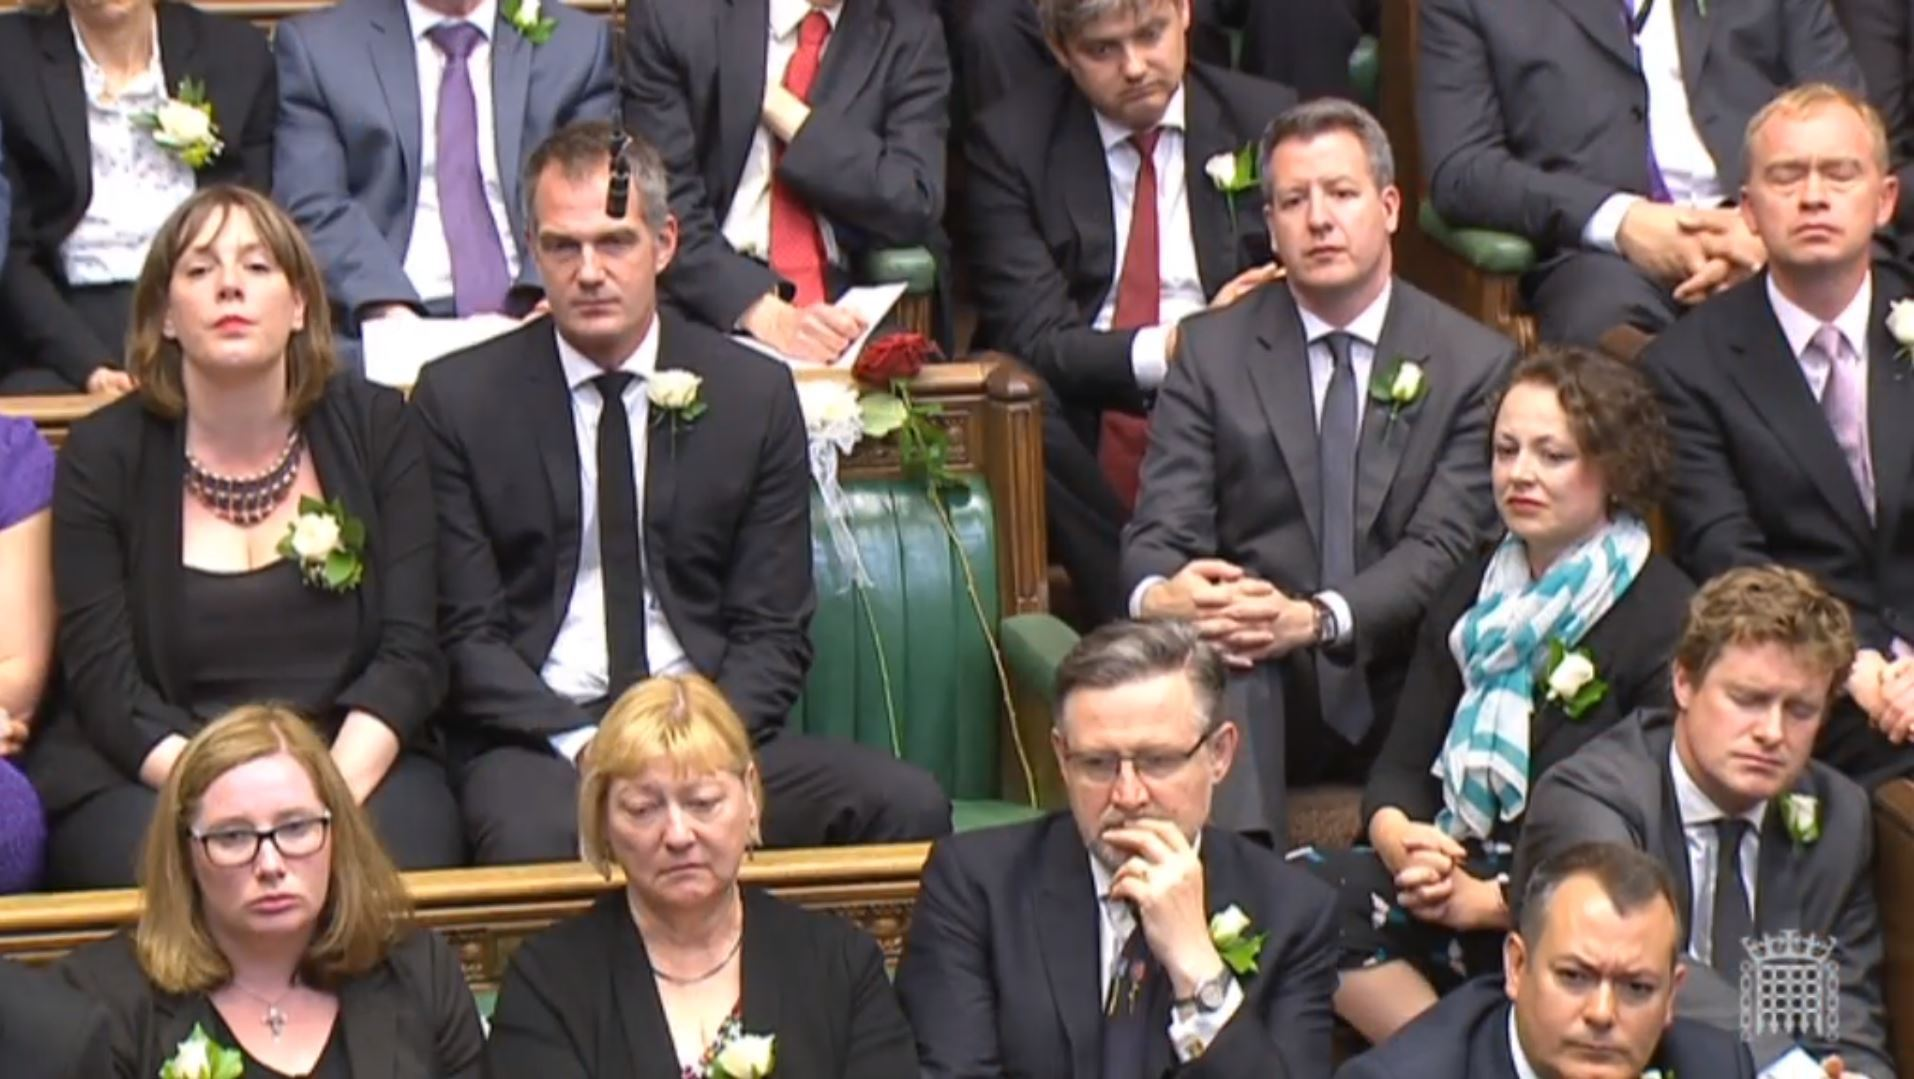 A white and red rose lie on Jo Cox's empty seat in the House of Commons, London, as MPs gather to pay tribute to her.